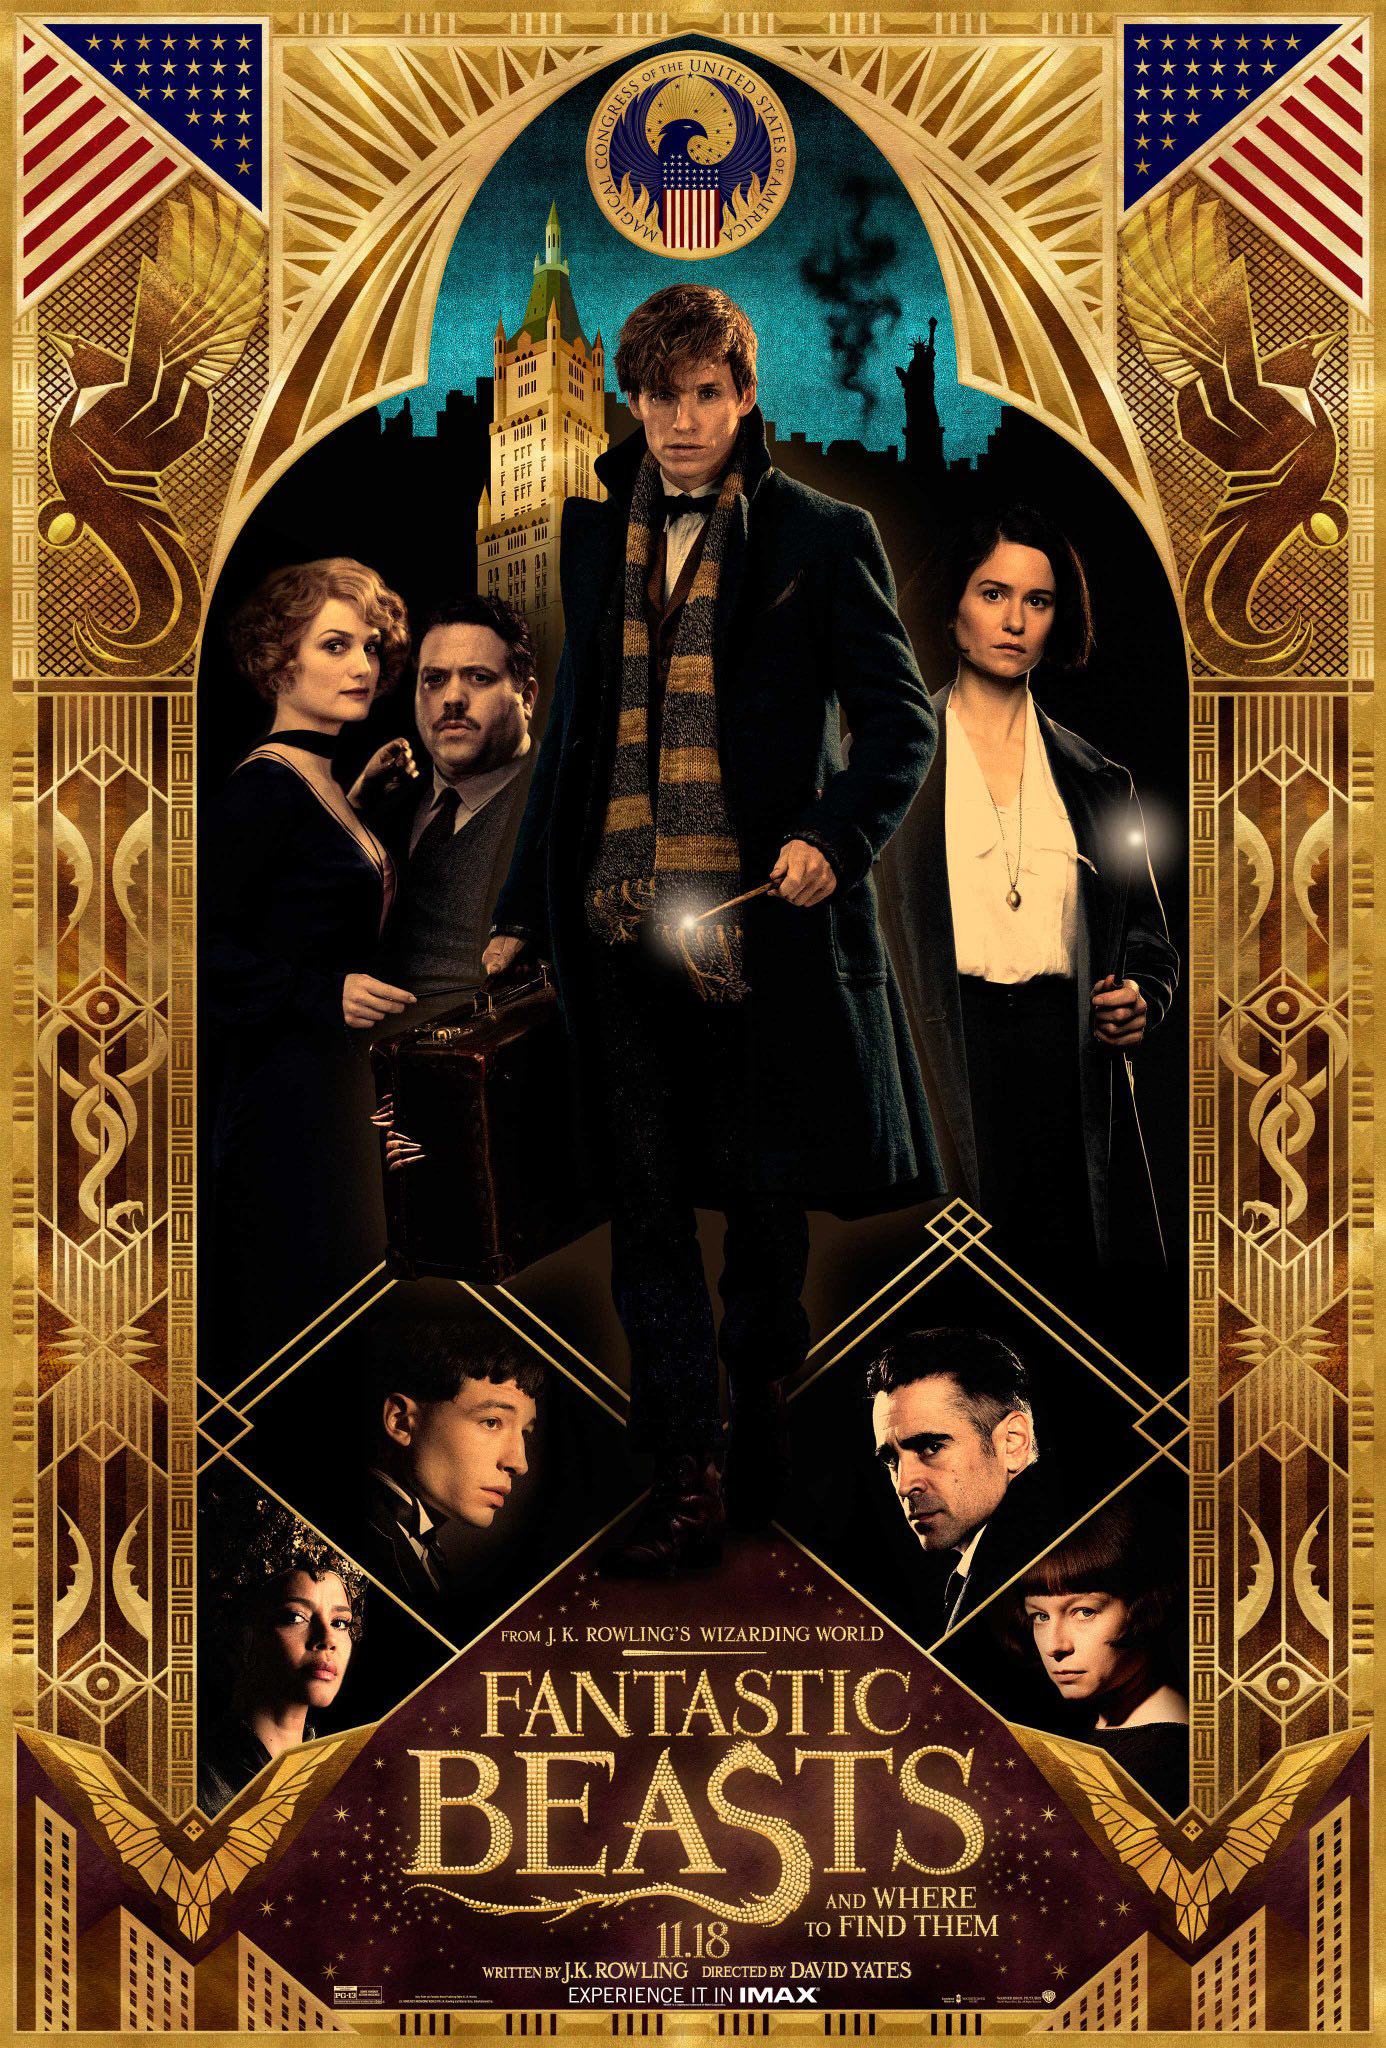 'Fantastic Beasts and Where to Find Them' fan event poster